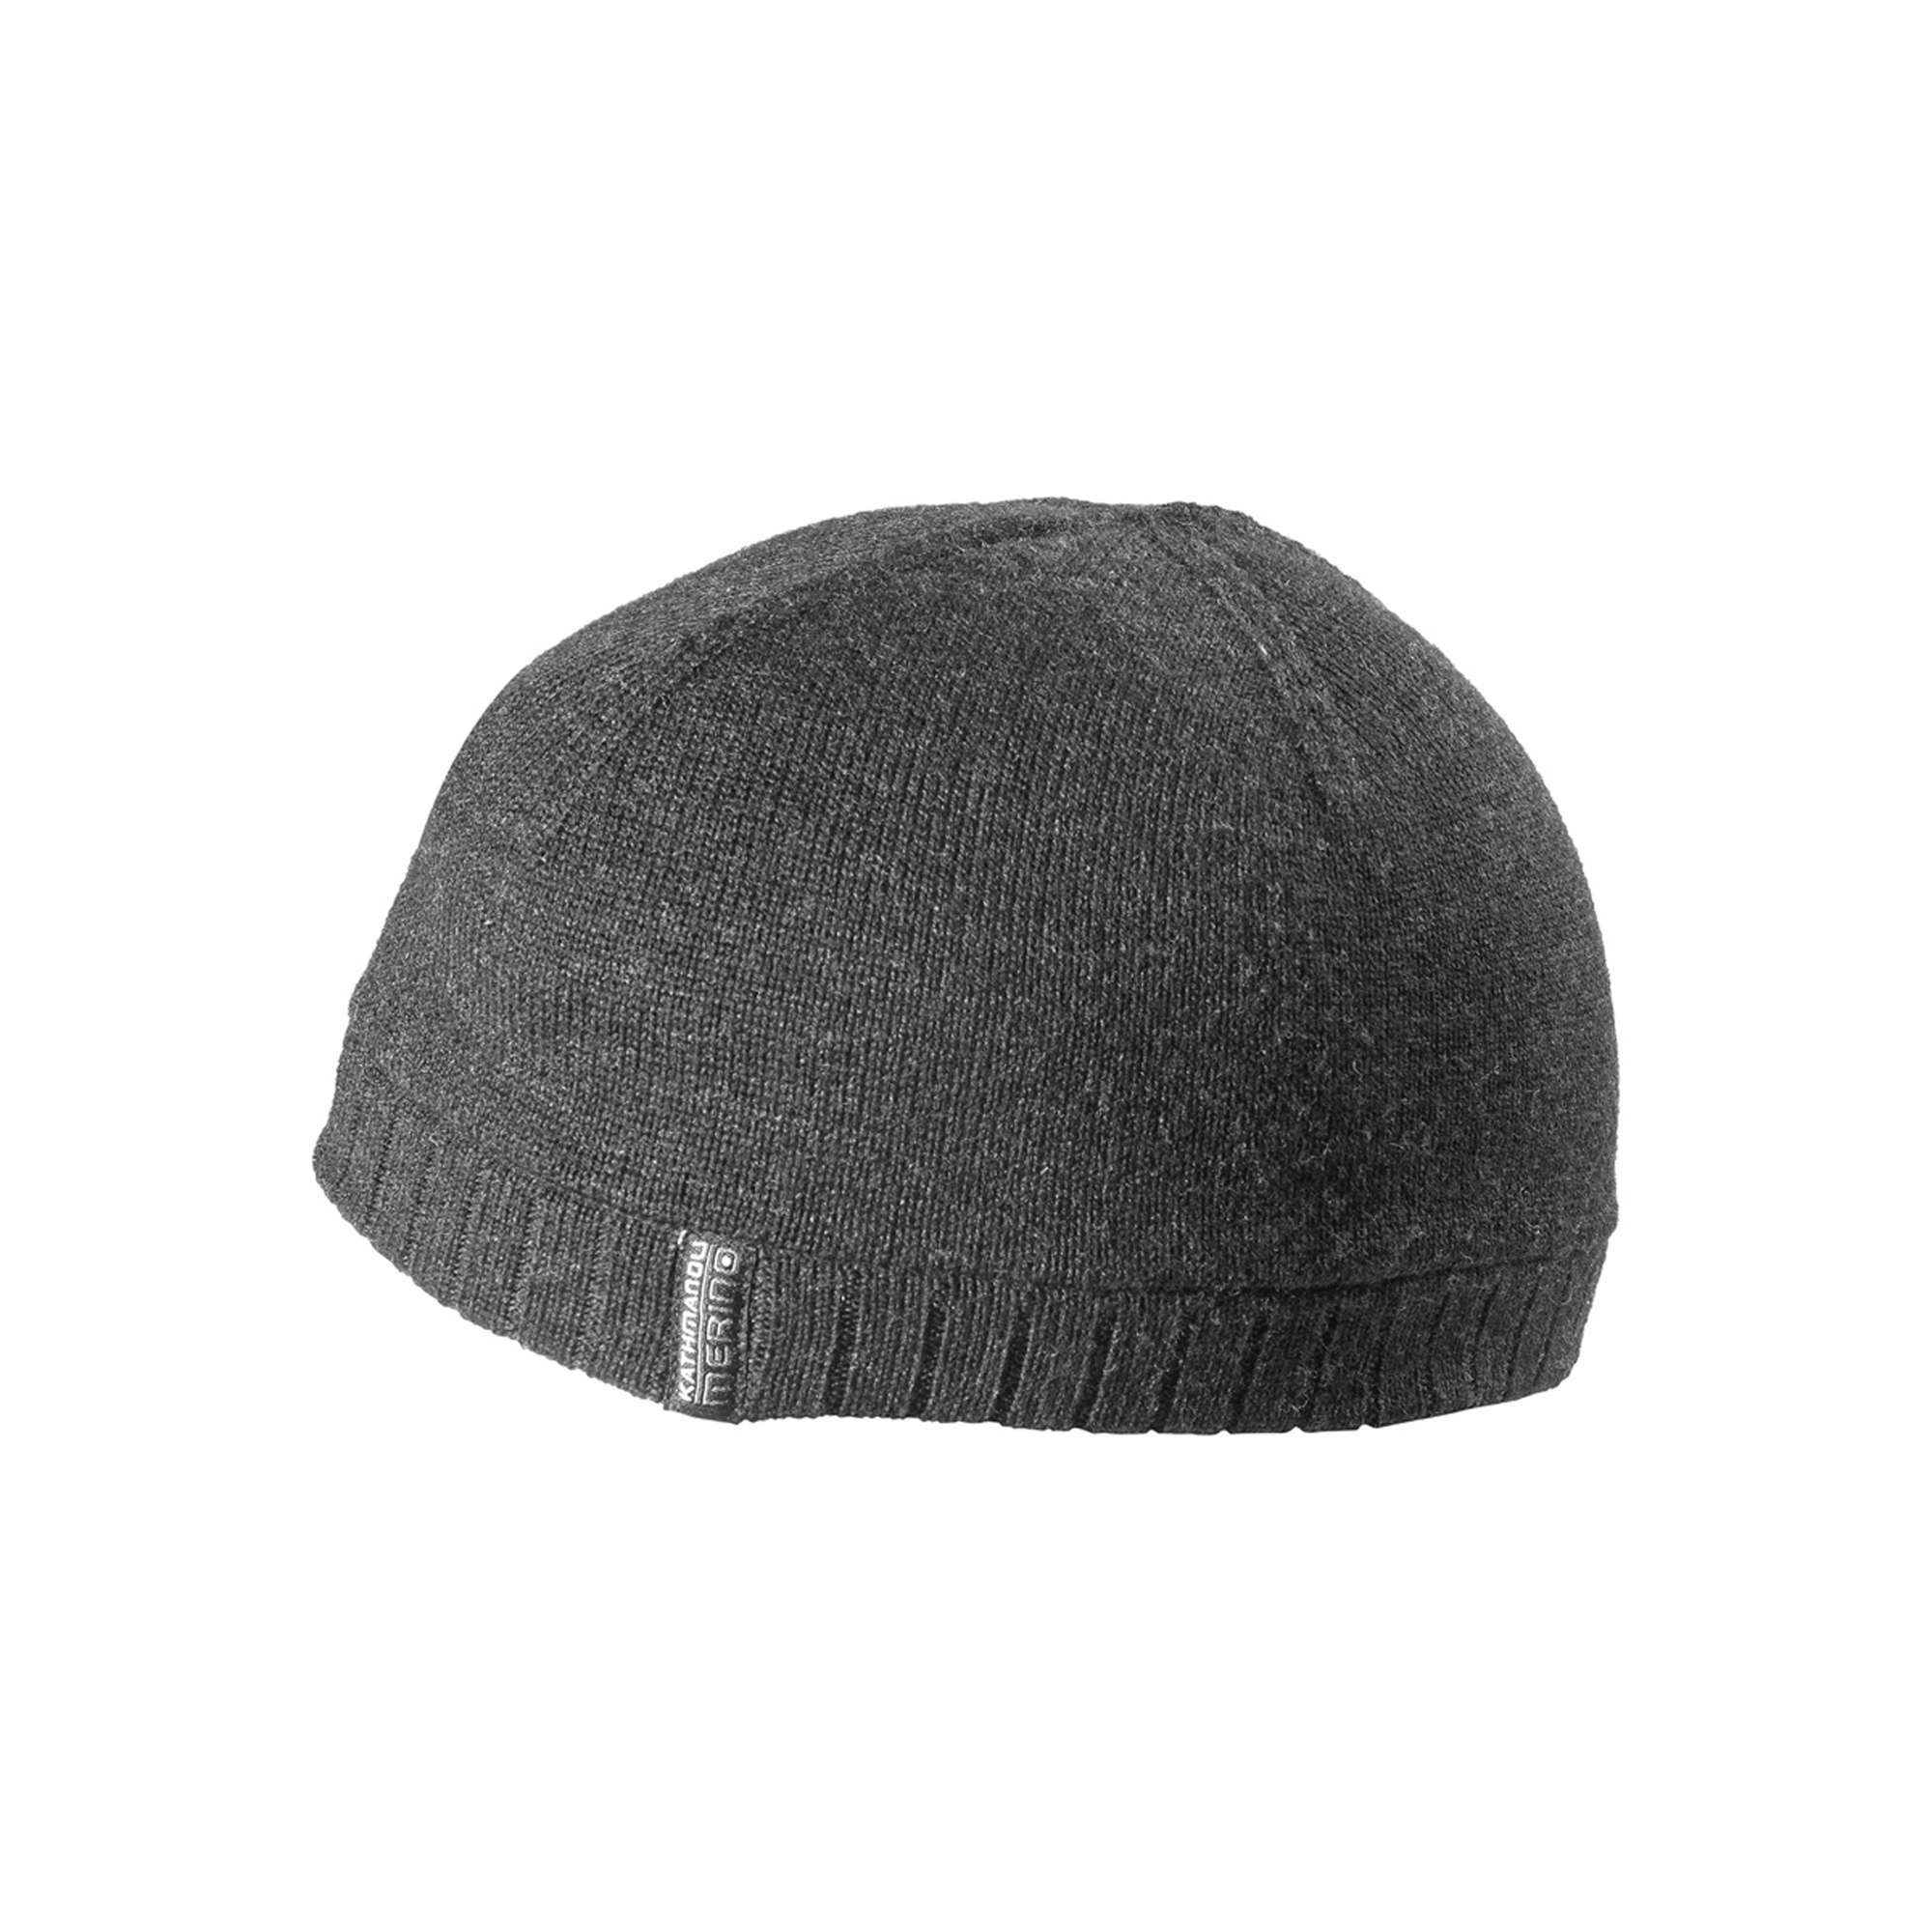 Kathmandu Women s Men s Close Fitting Merino Wool Warm Winter Beanie Hat afbc0c5601f1